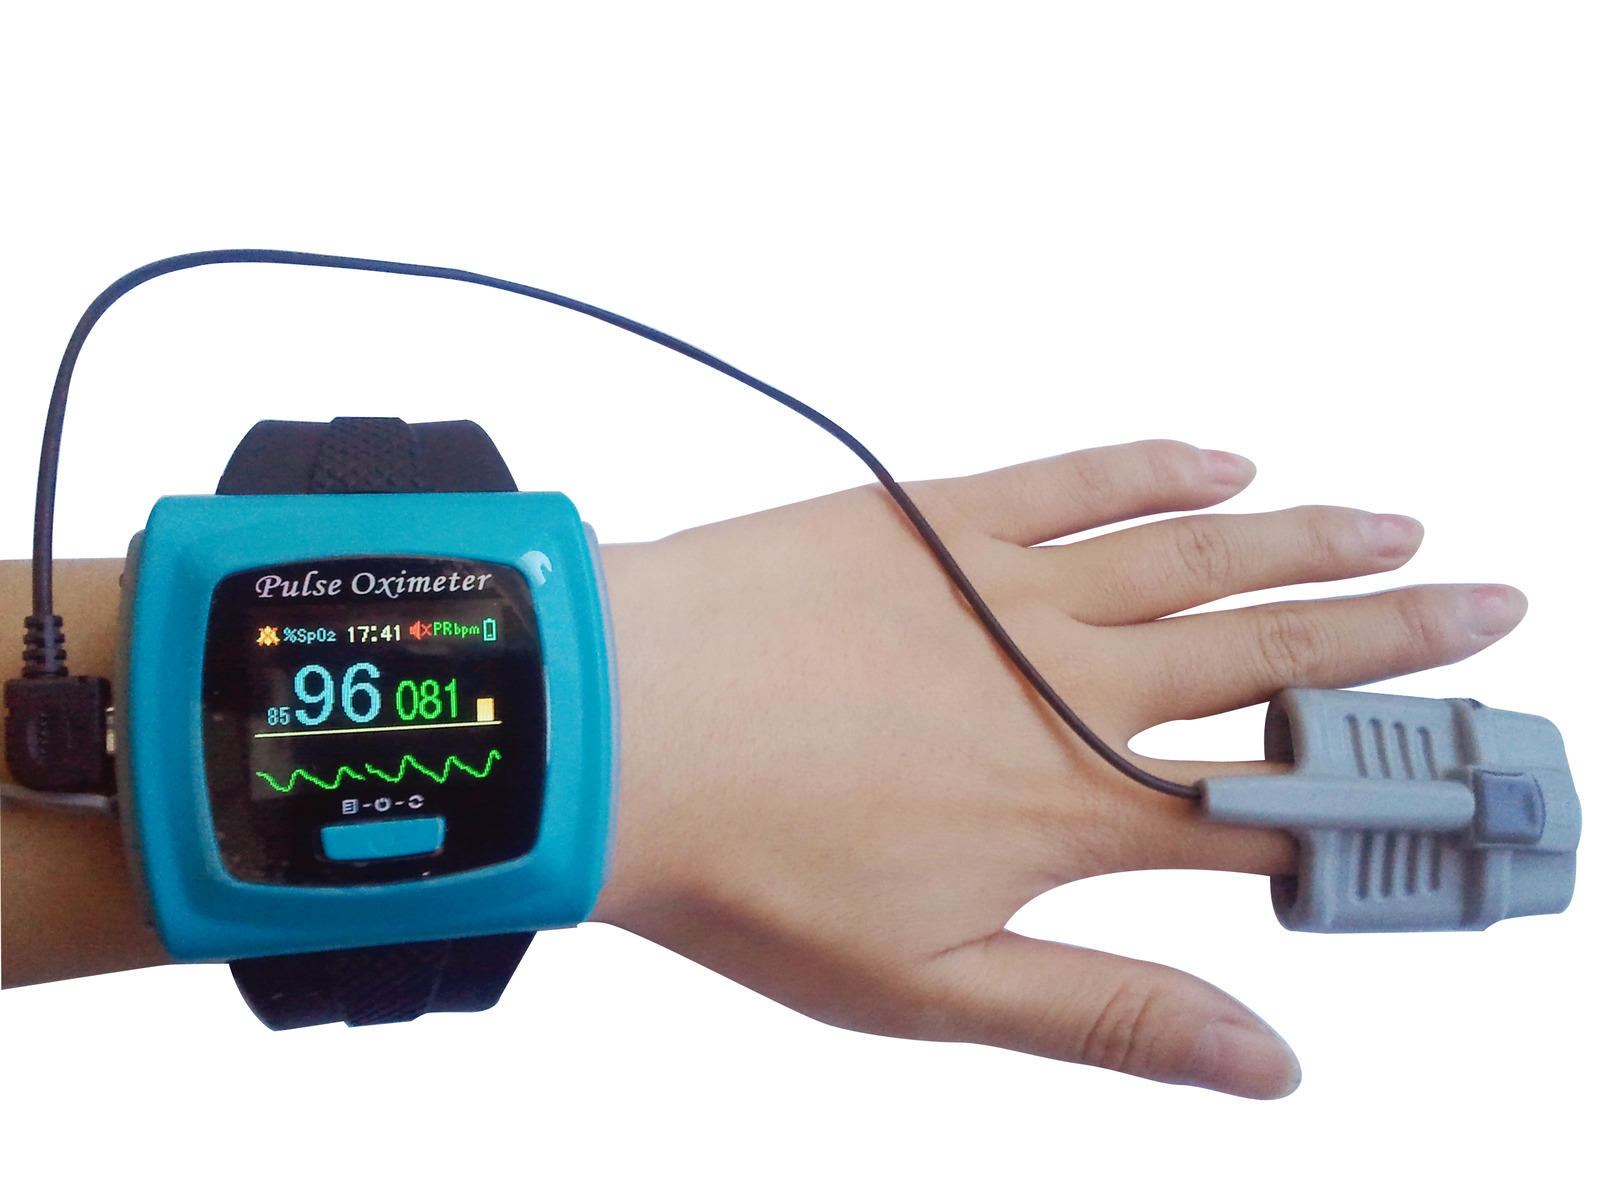 cms50fw wrist pulse oximeter with bluetooth oled display alarm rechargeable. Black Bedroom Furniture Sets. Home Design Ideas